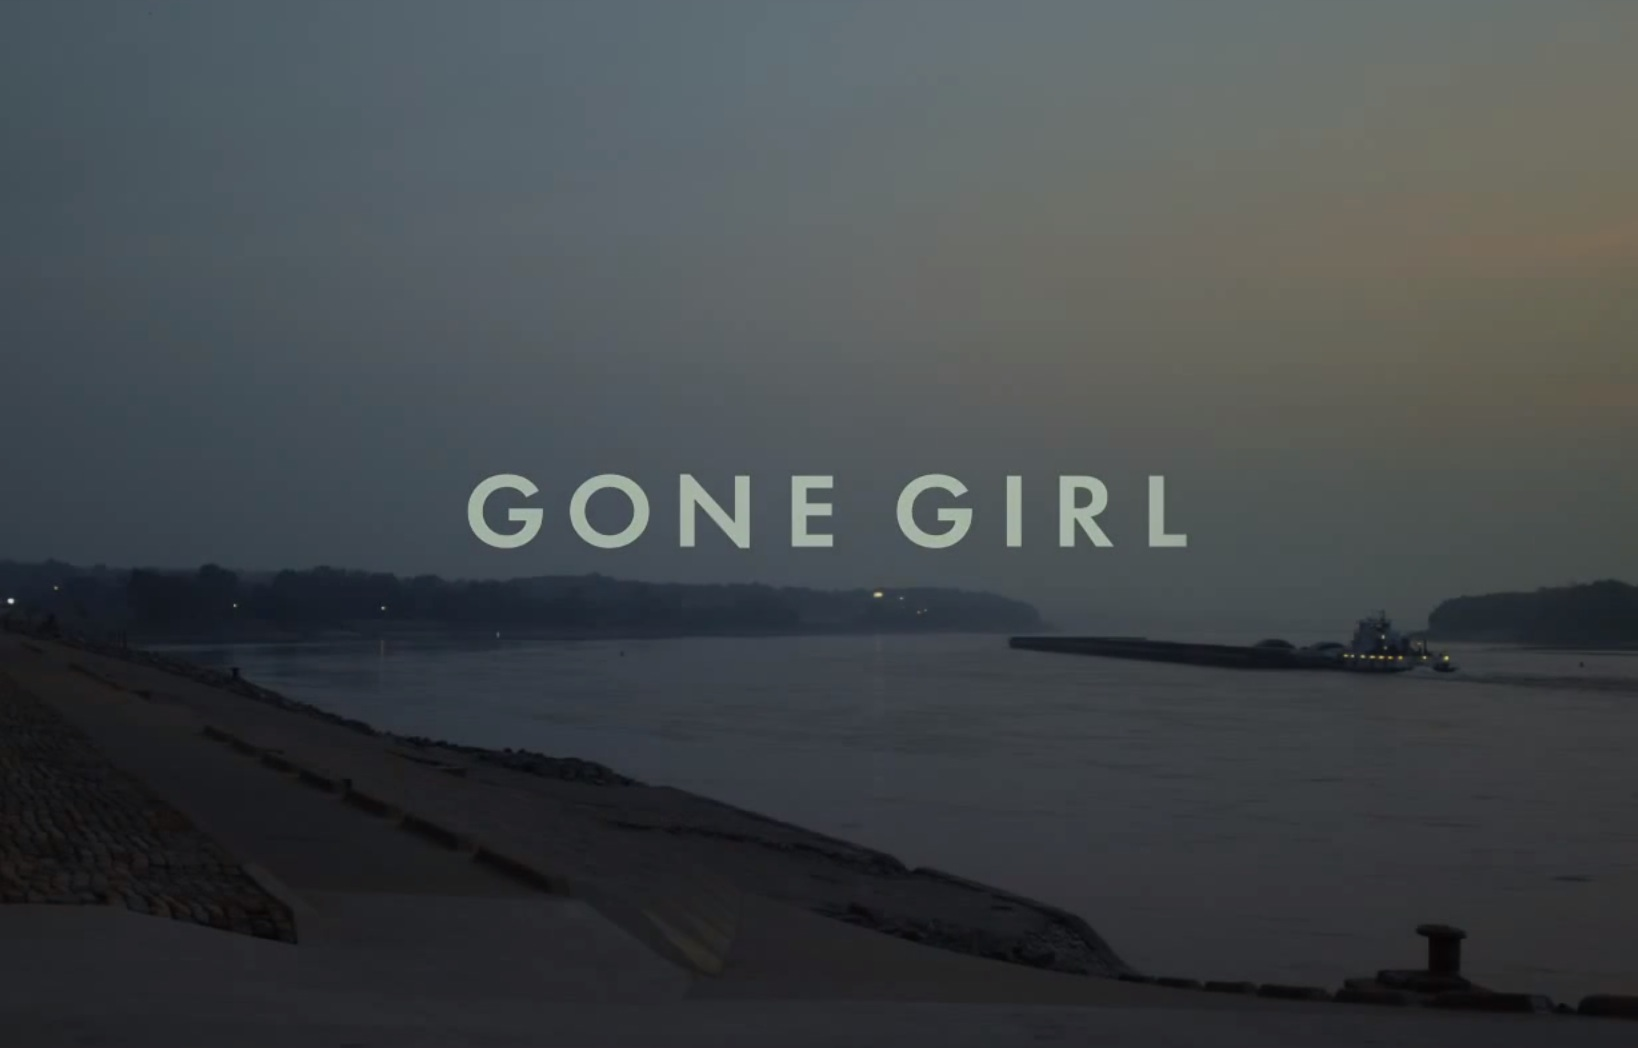 9 Books that are the next Gone Girl